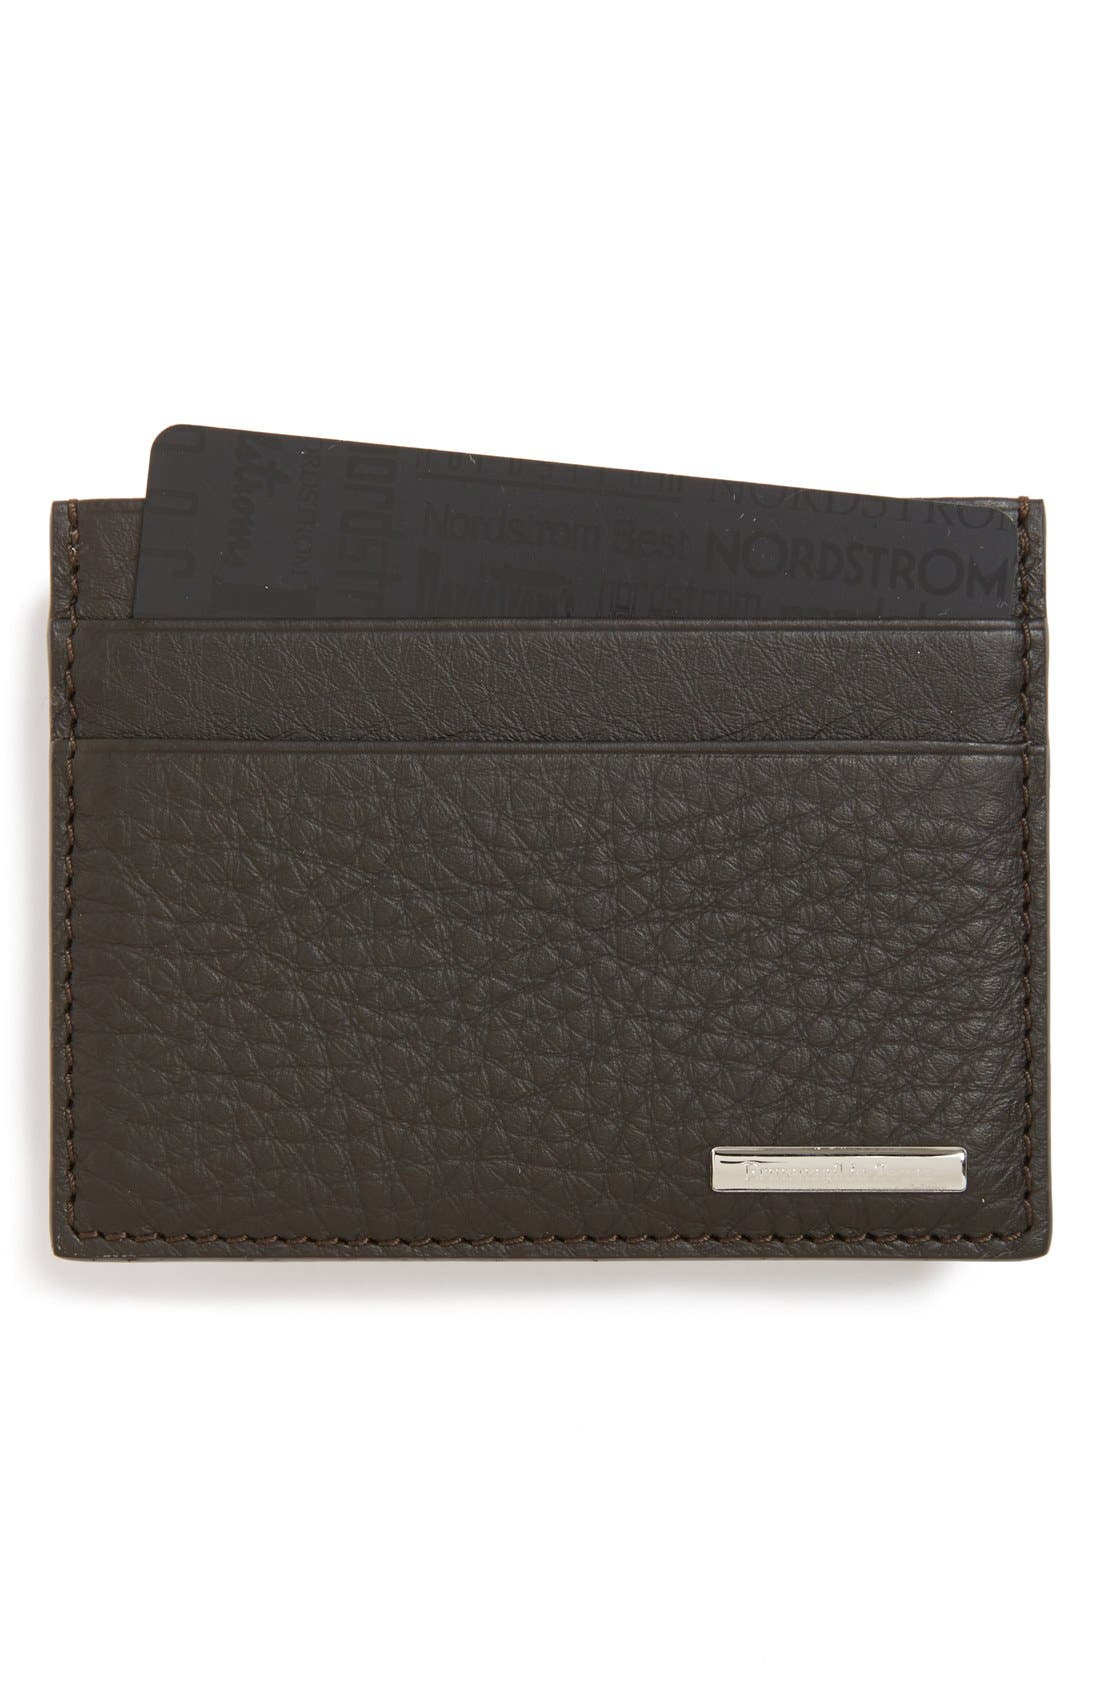 Leather Card Holder,                             Main thumbnail 1, color,                             212